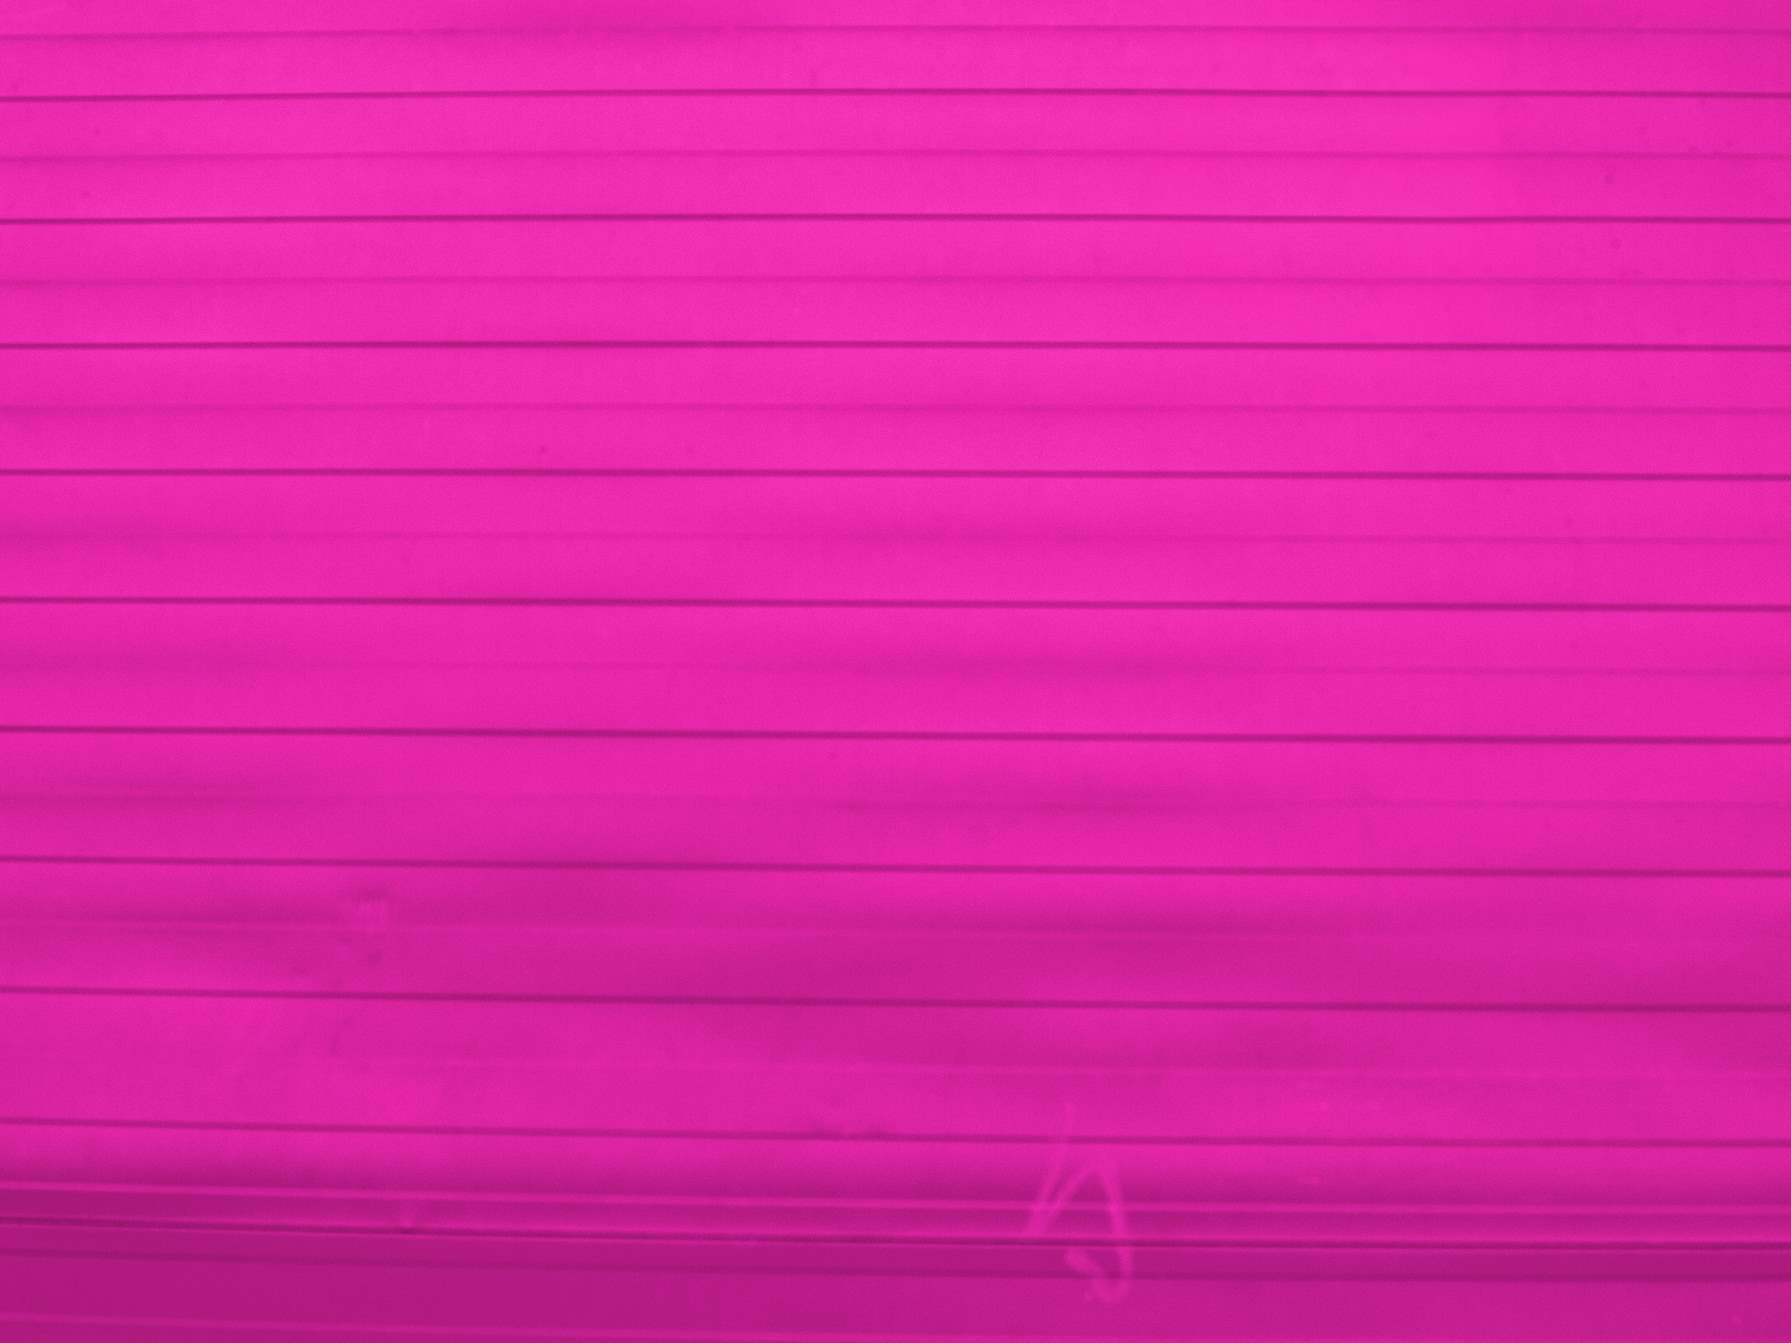 Purple Metal Garage Door Panel Background Photohdx